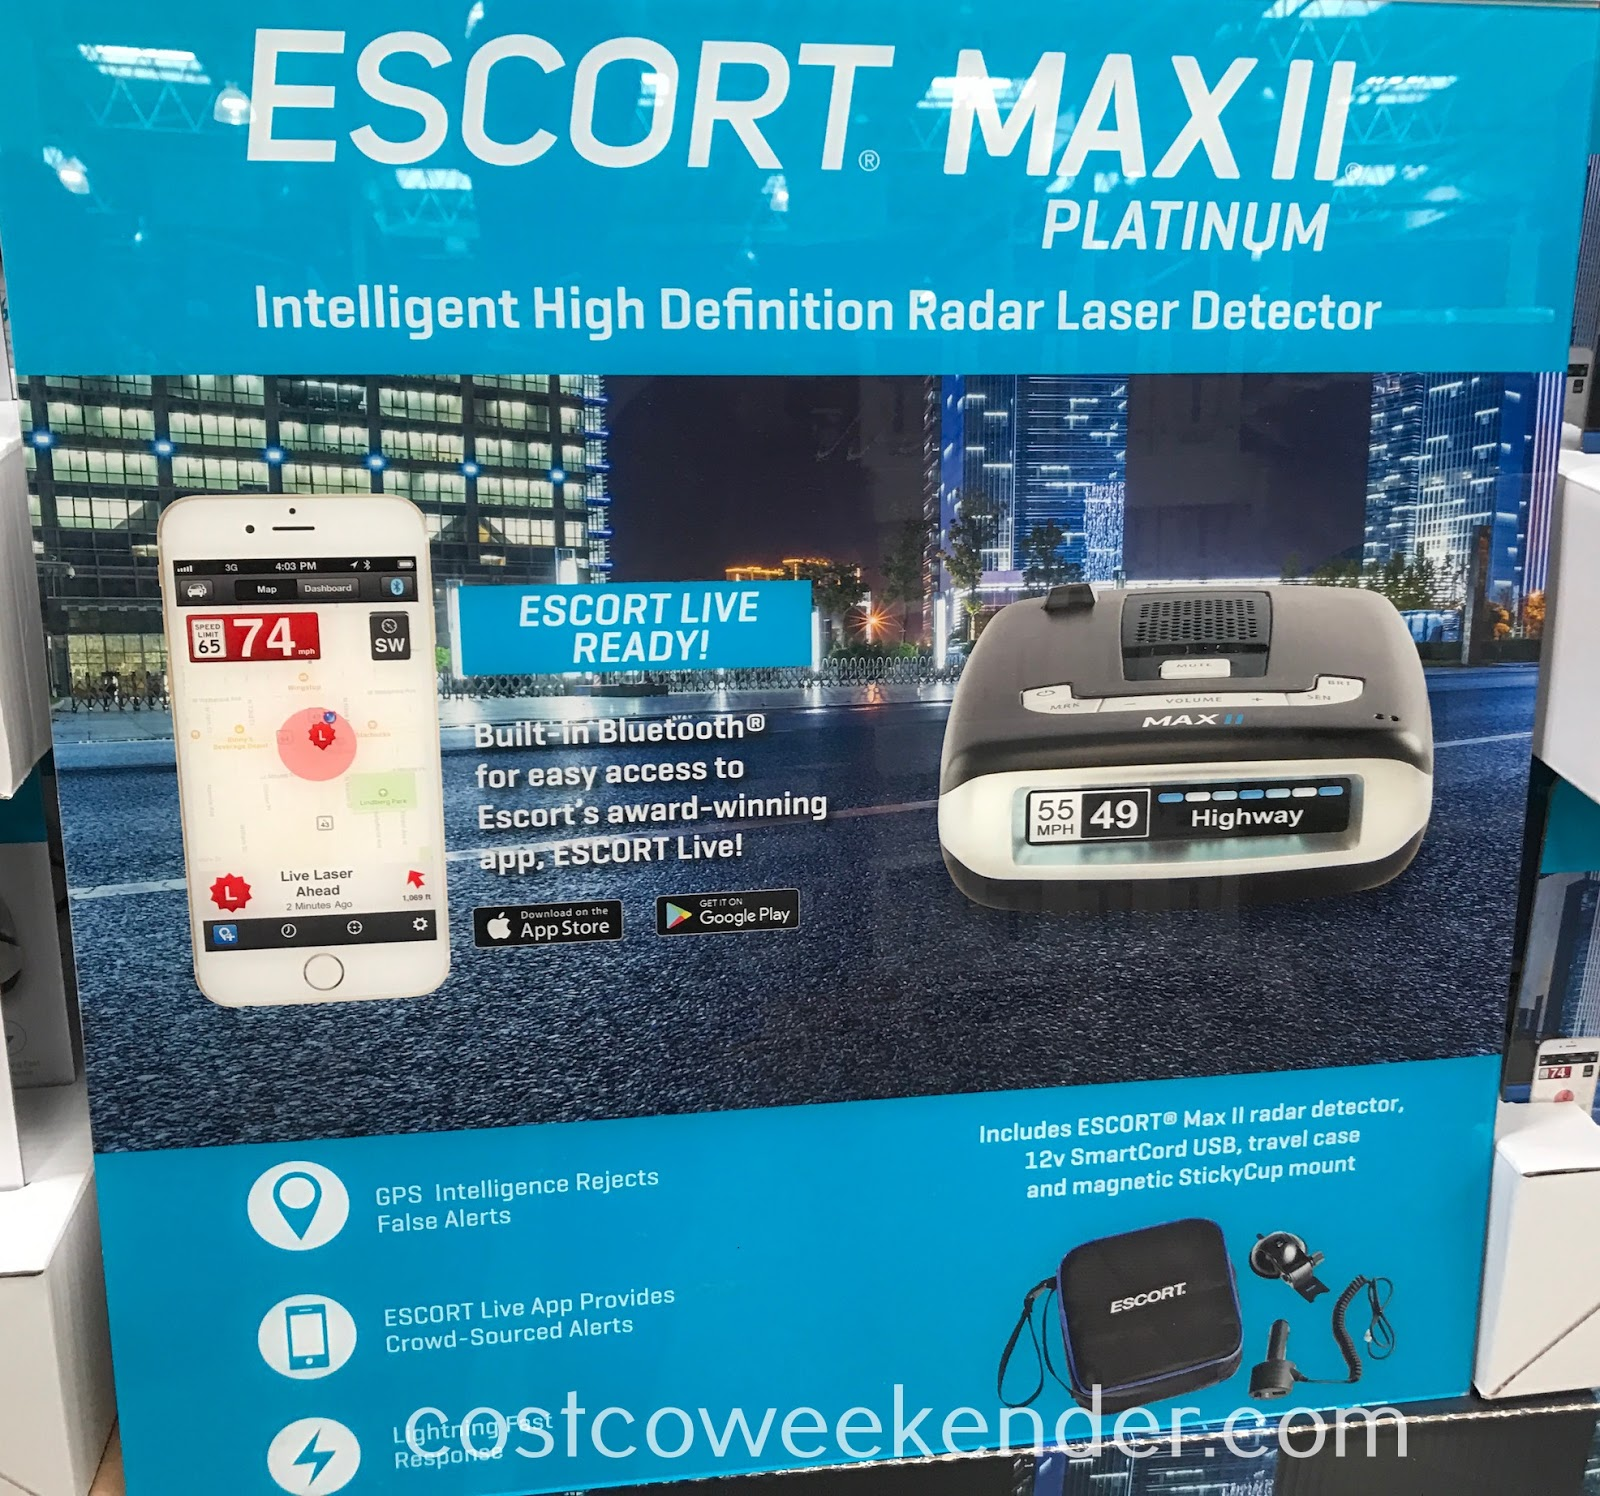 Avoid being pulled over with the Escort Max II Platinum Radar Detector